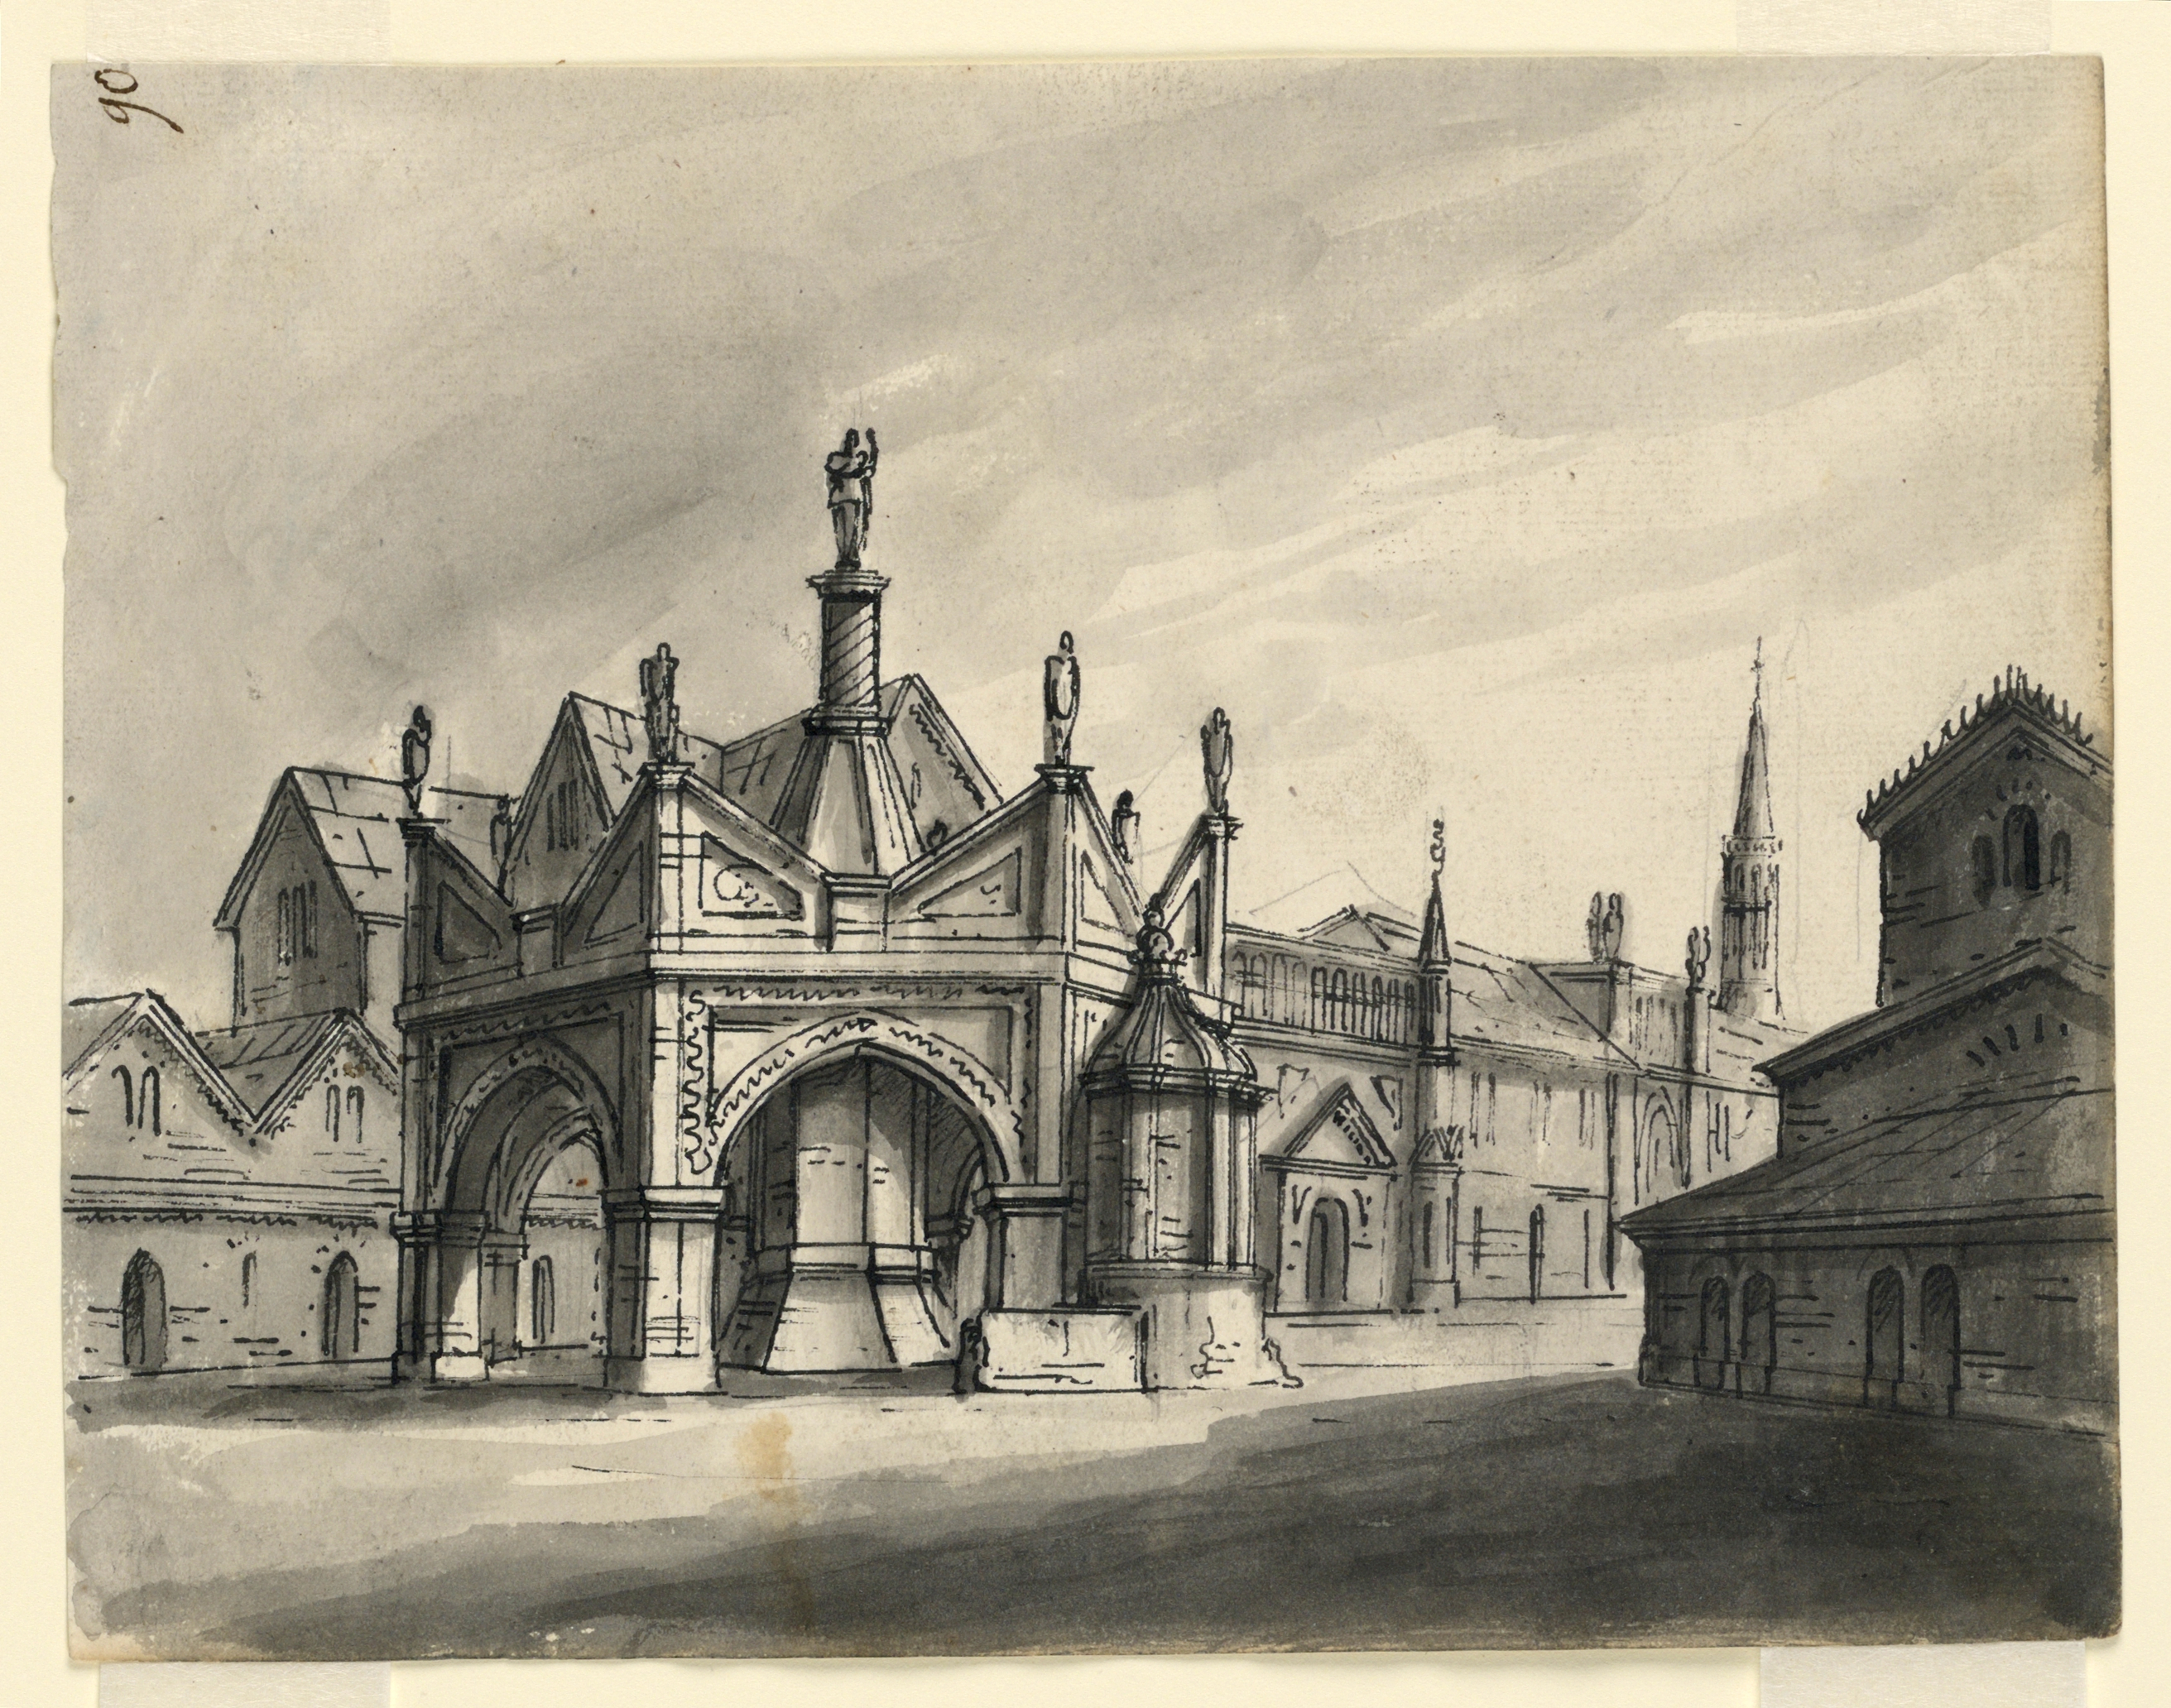 FileDrawing Stage Design Exterior Of Gothic Buildings 1831 CH 18359317